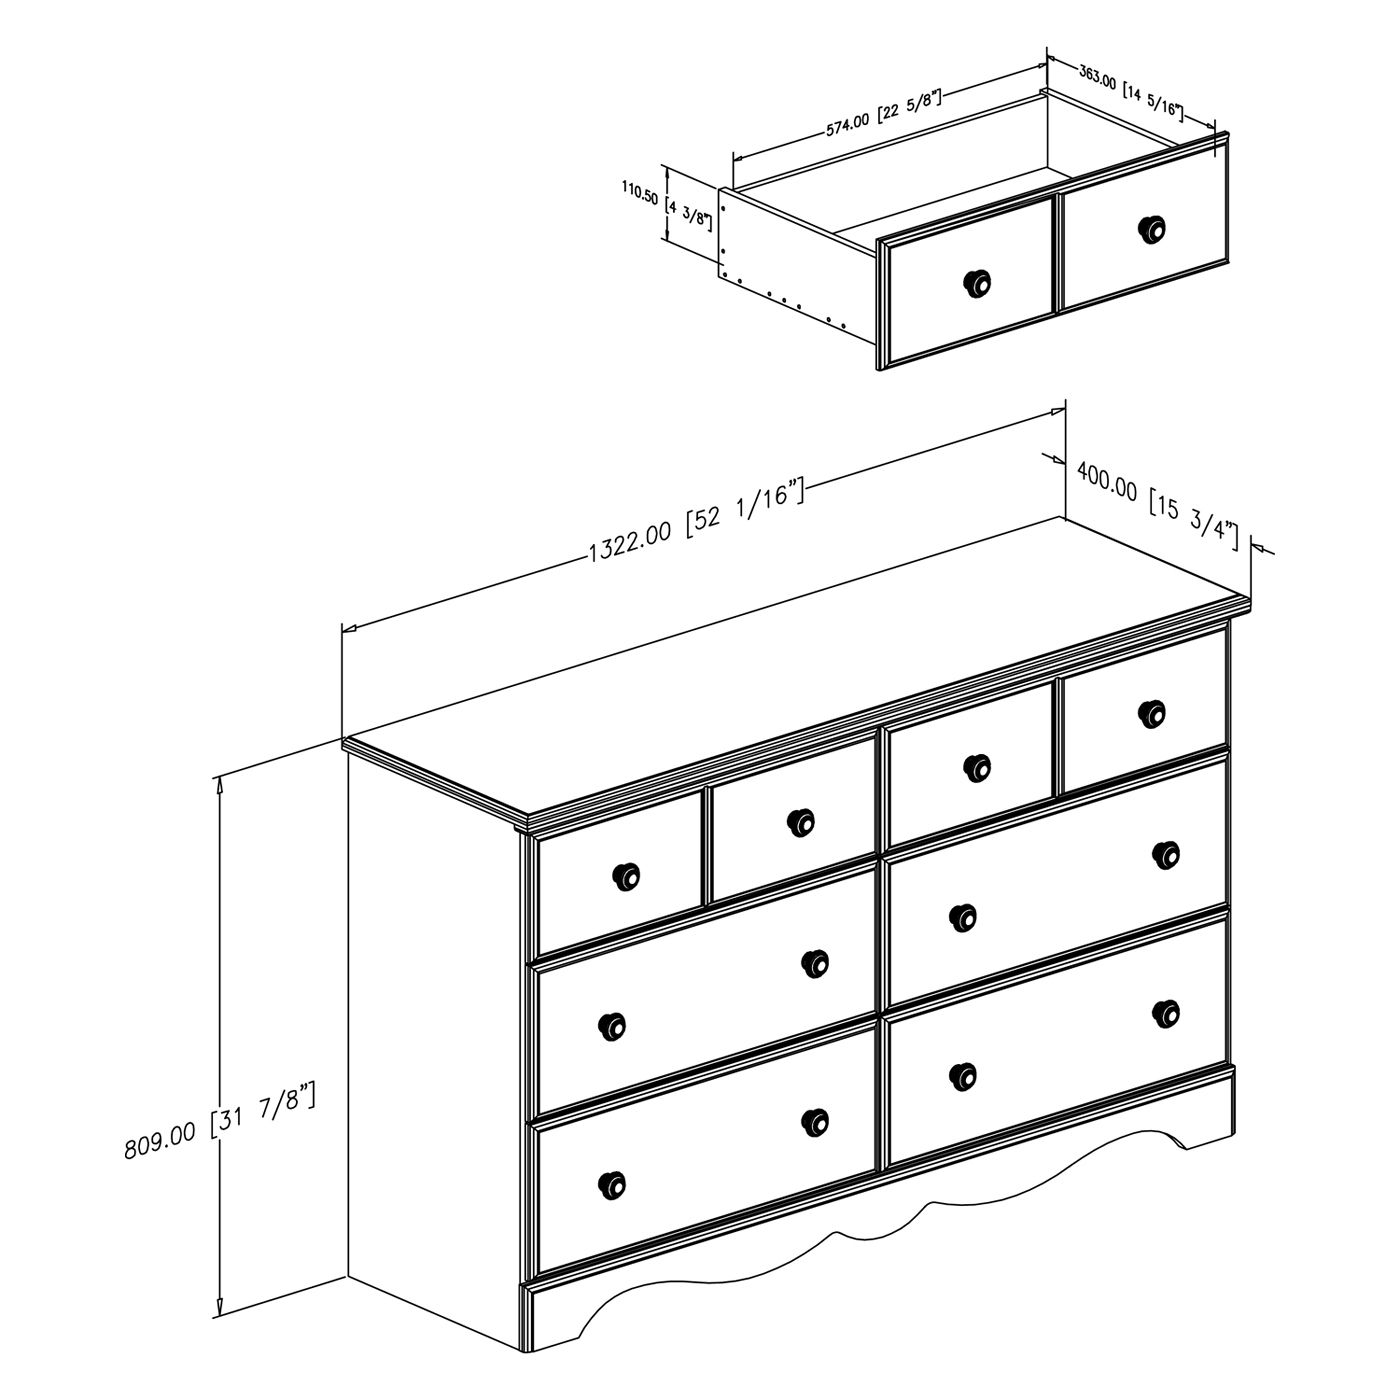 Lowboy Dresser Dimensions Google Search